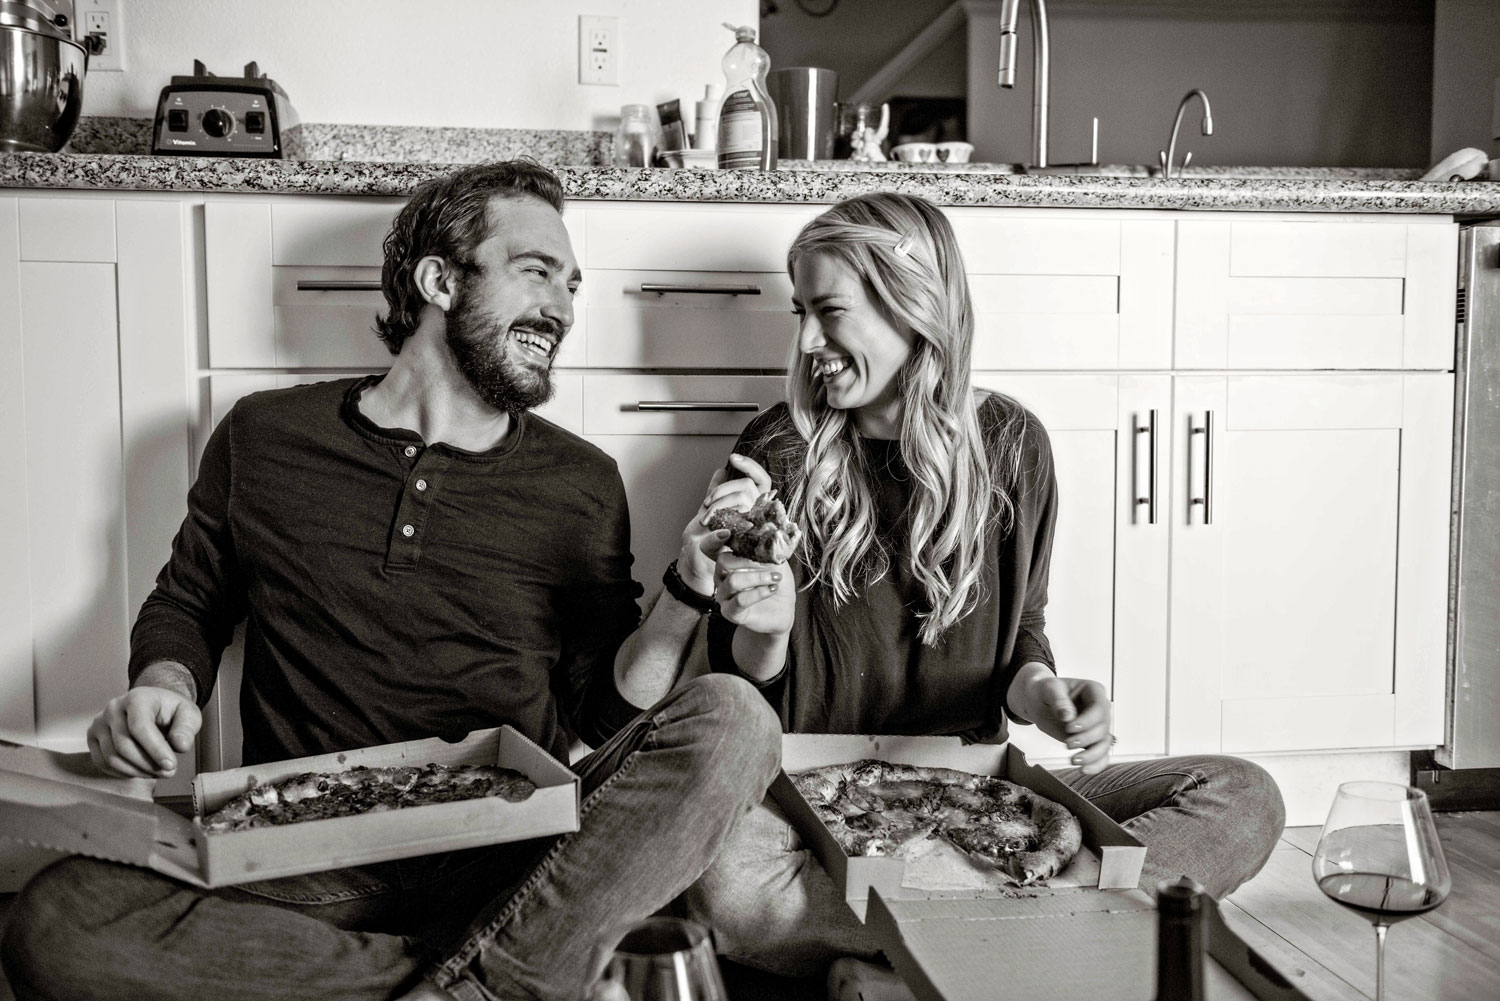 Engagement photo shoot at home on kitchen floor with pizza and wine Laurie Bailey Photography